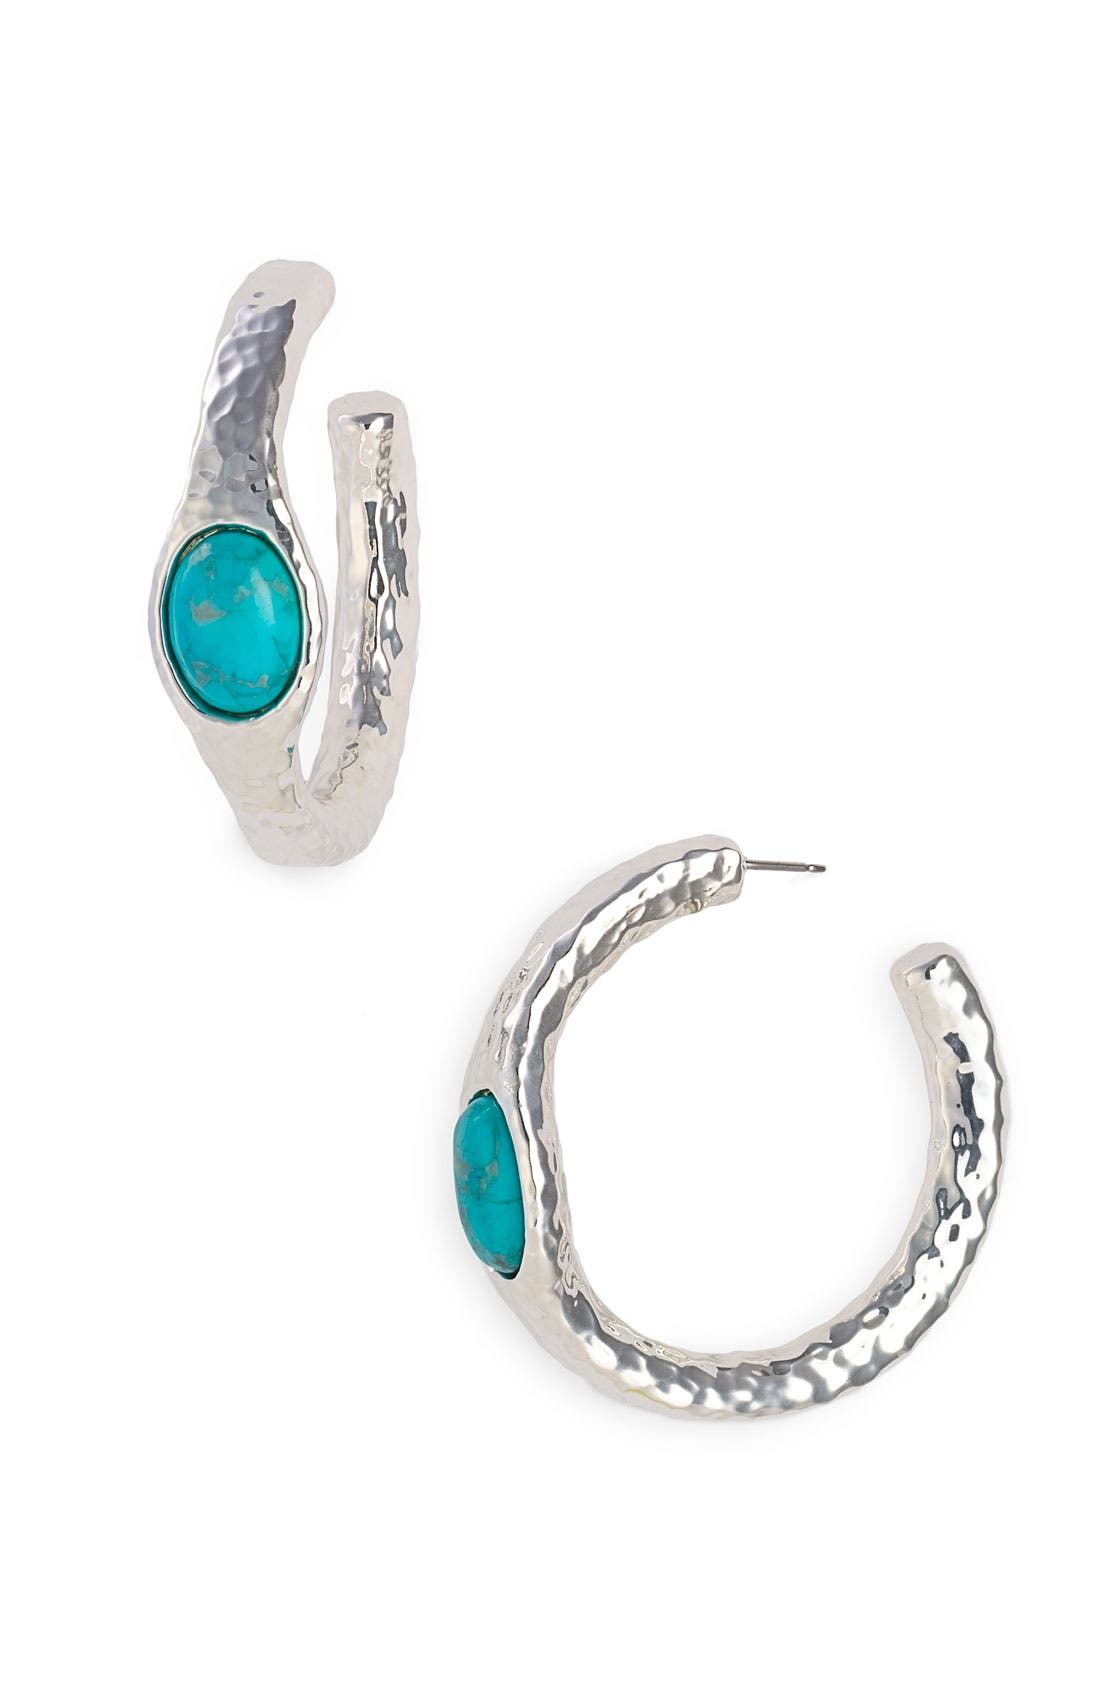 Main Image - Simon Sebbag Stone Hoop Earrings